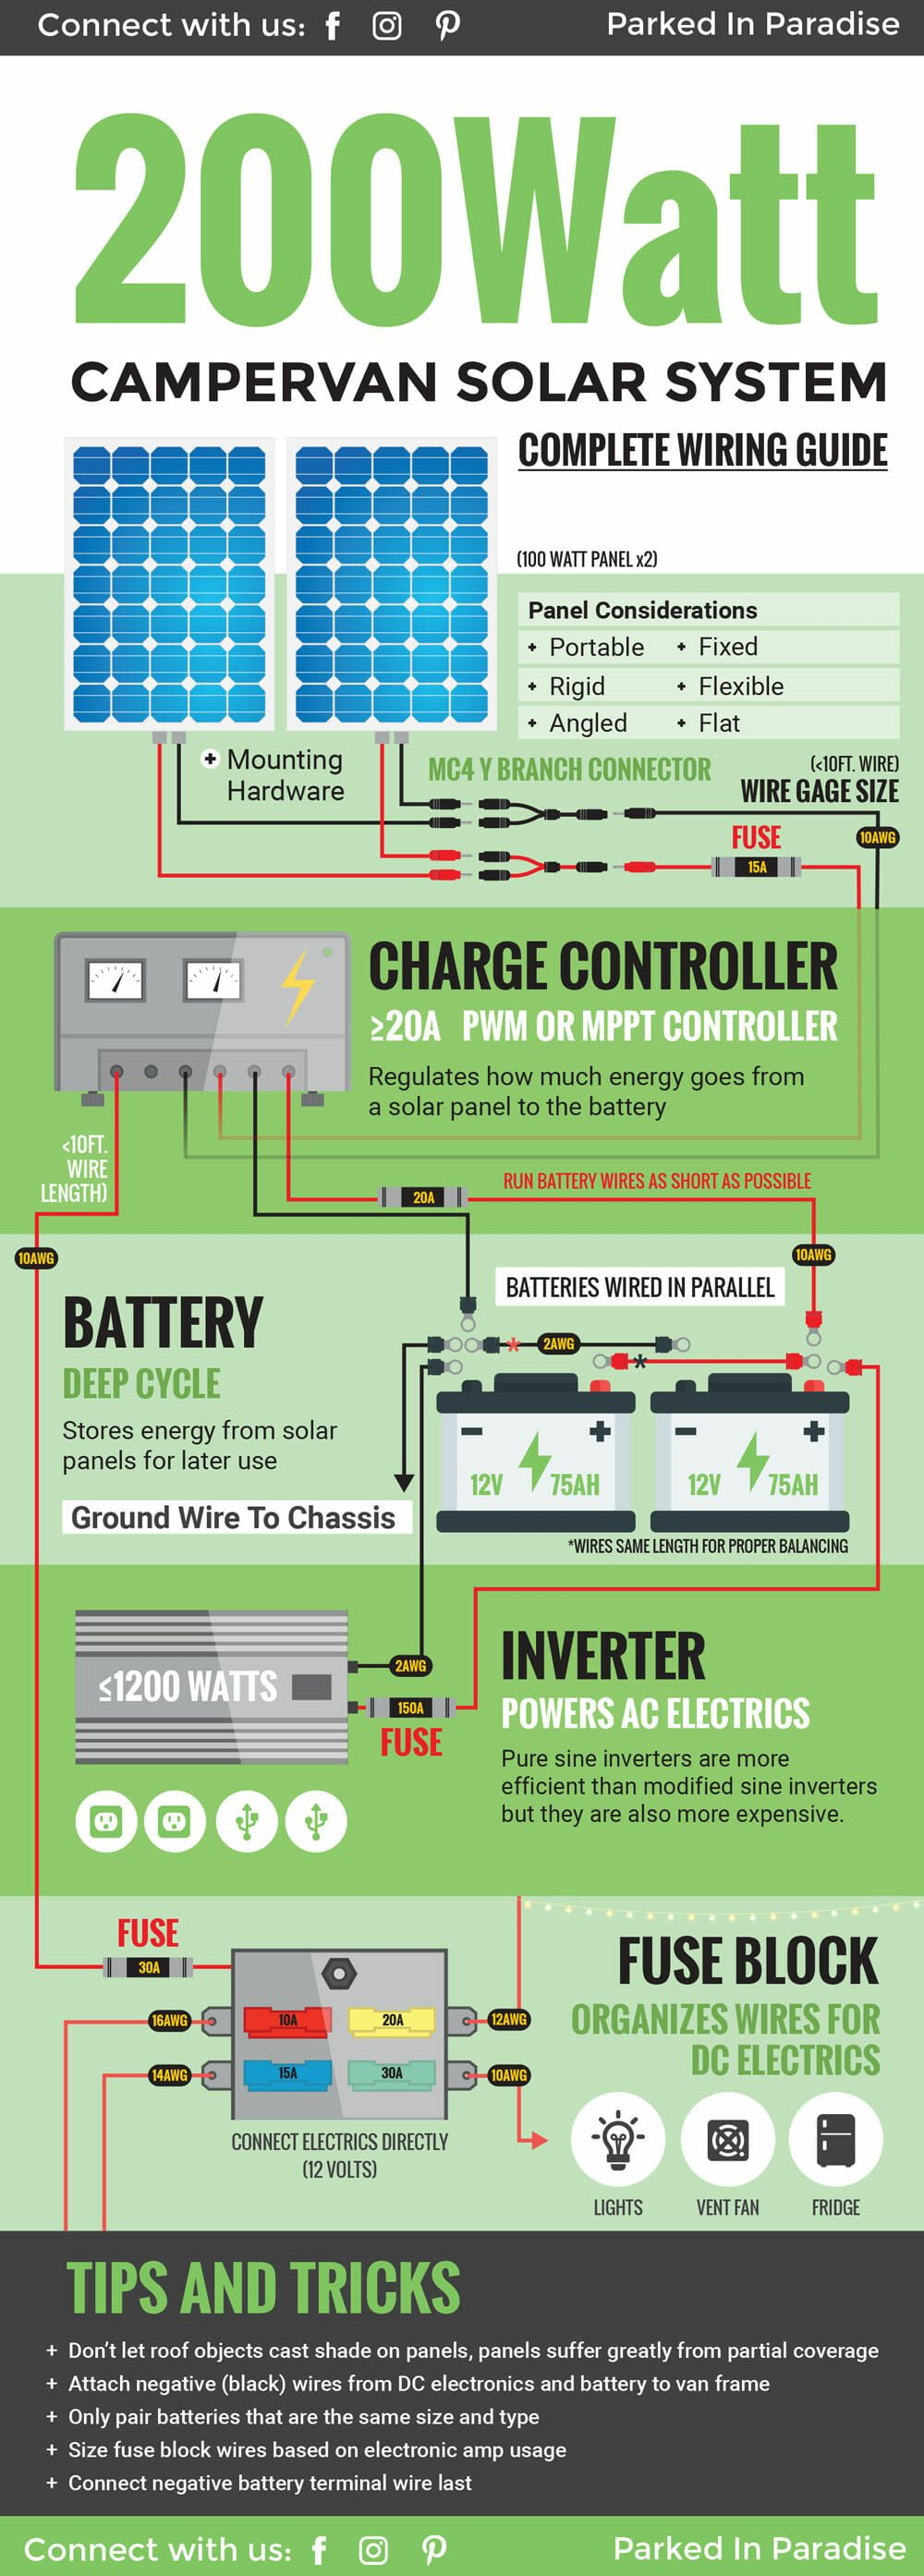 Solar Calculator And Diy Wiring Diagrams Alternative Energy Solar Panel System Solar Panels